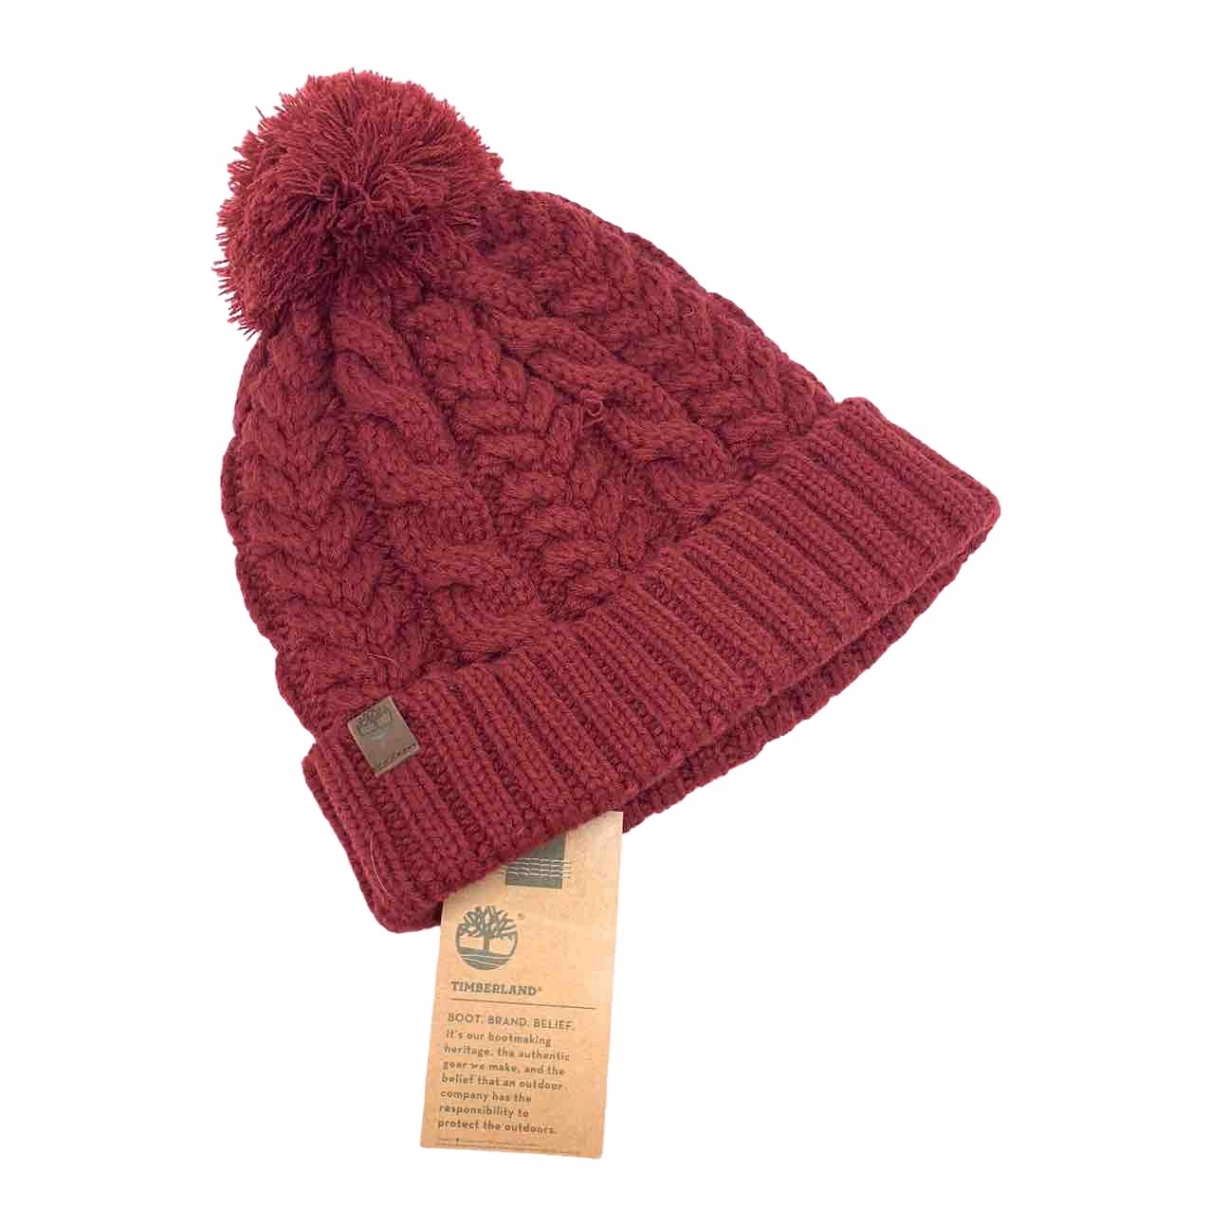 Timberland \N Red Wool hat & pull on hat for Men M International